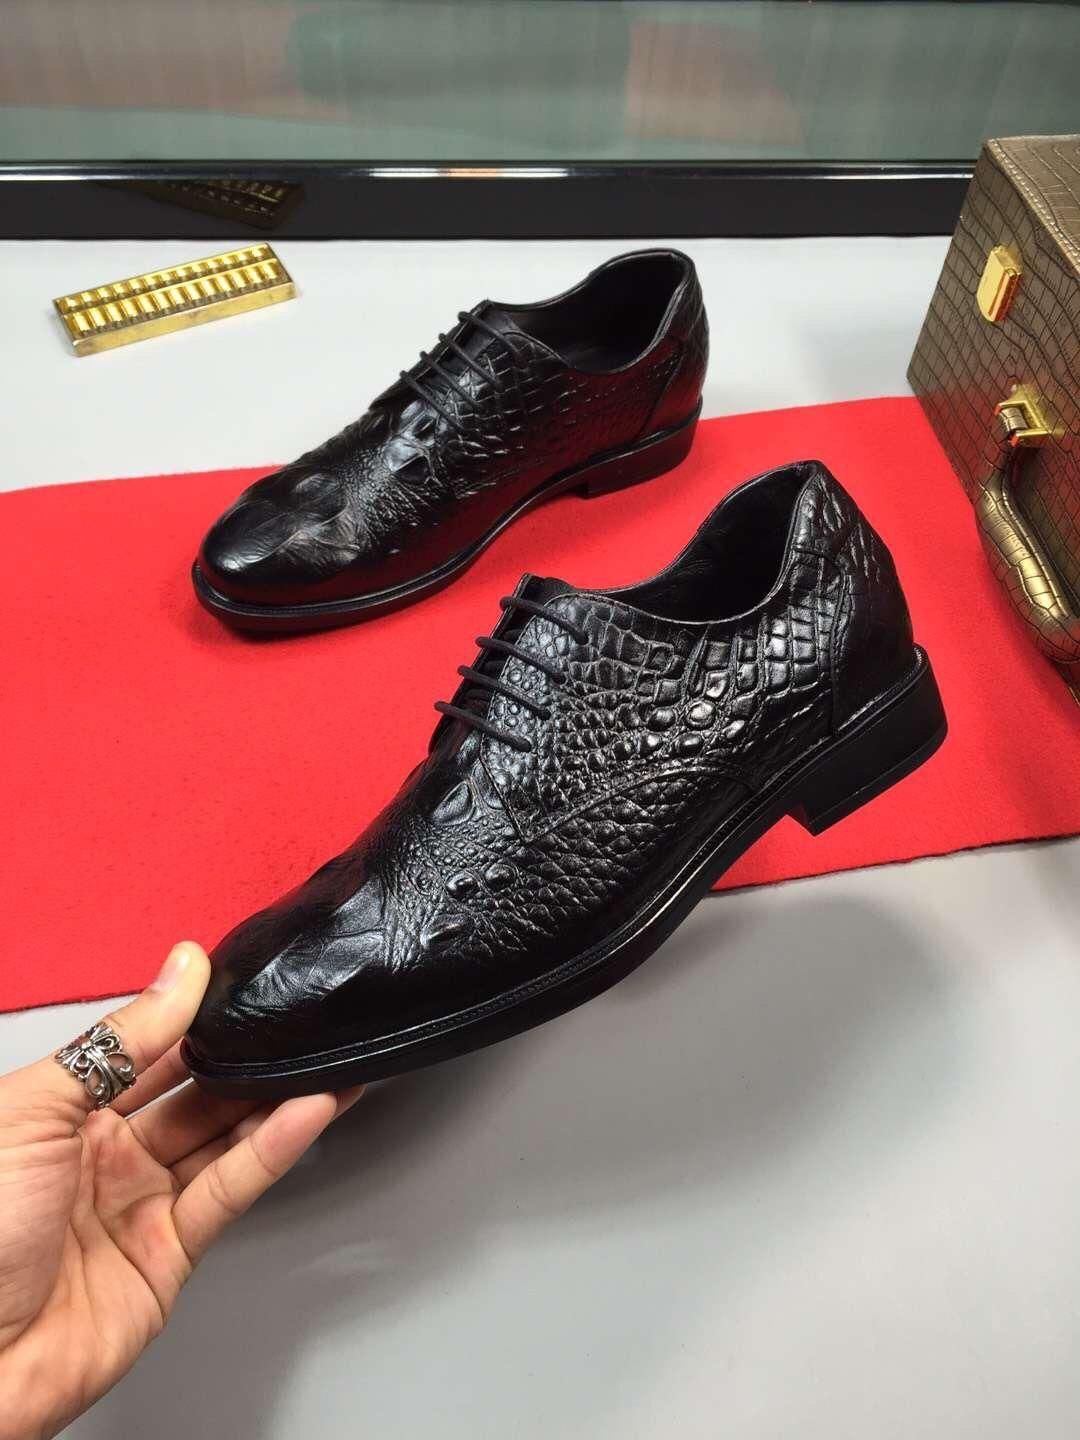 500eee31 Cheap Armani Men Leather Shoes,Replica Armani Men Leather Shoes,fake ...